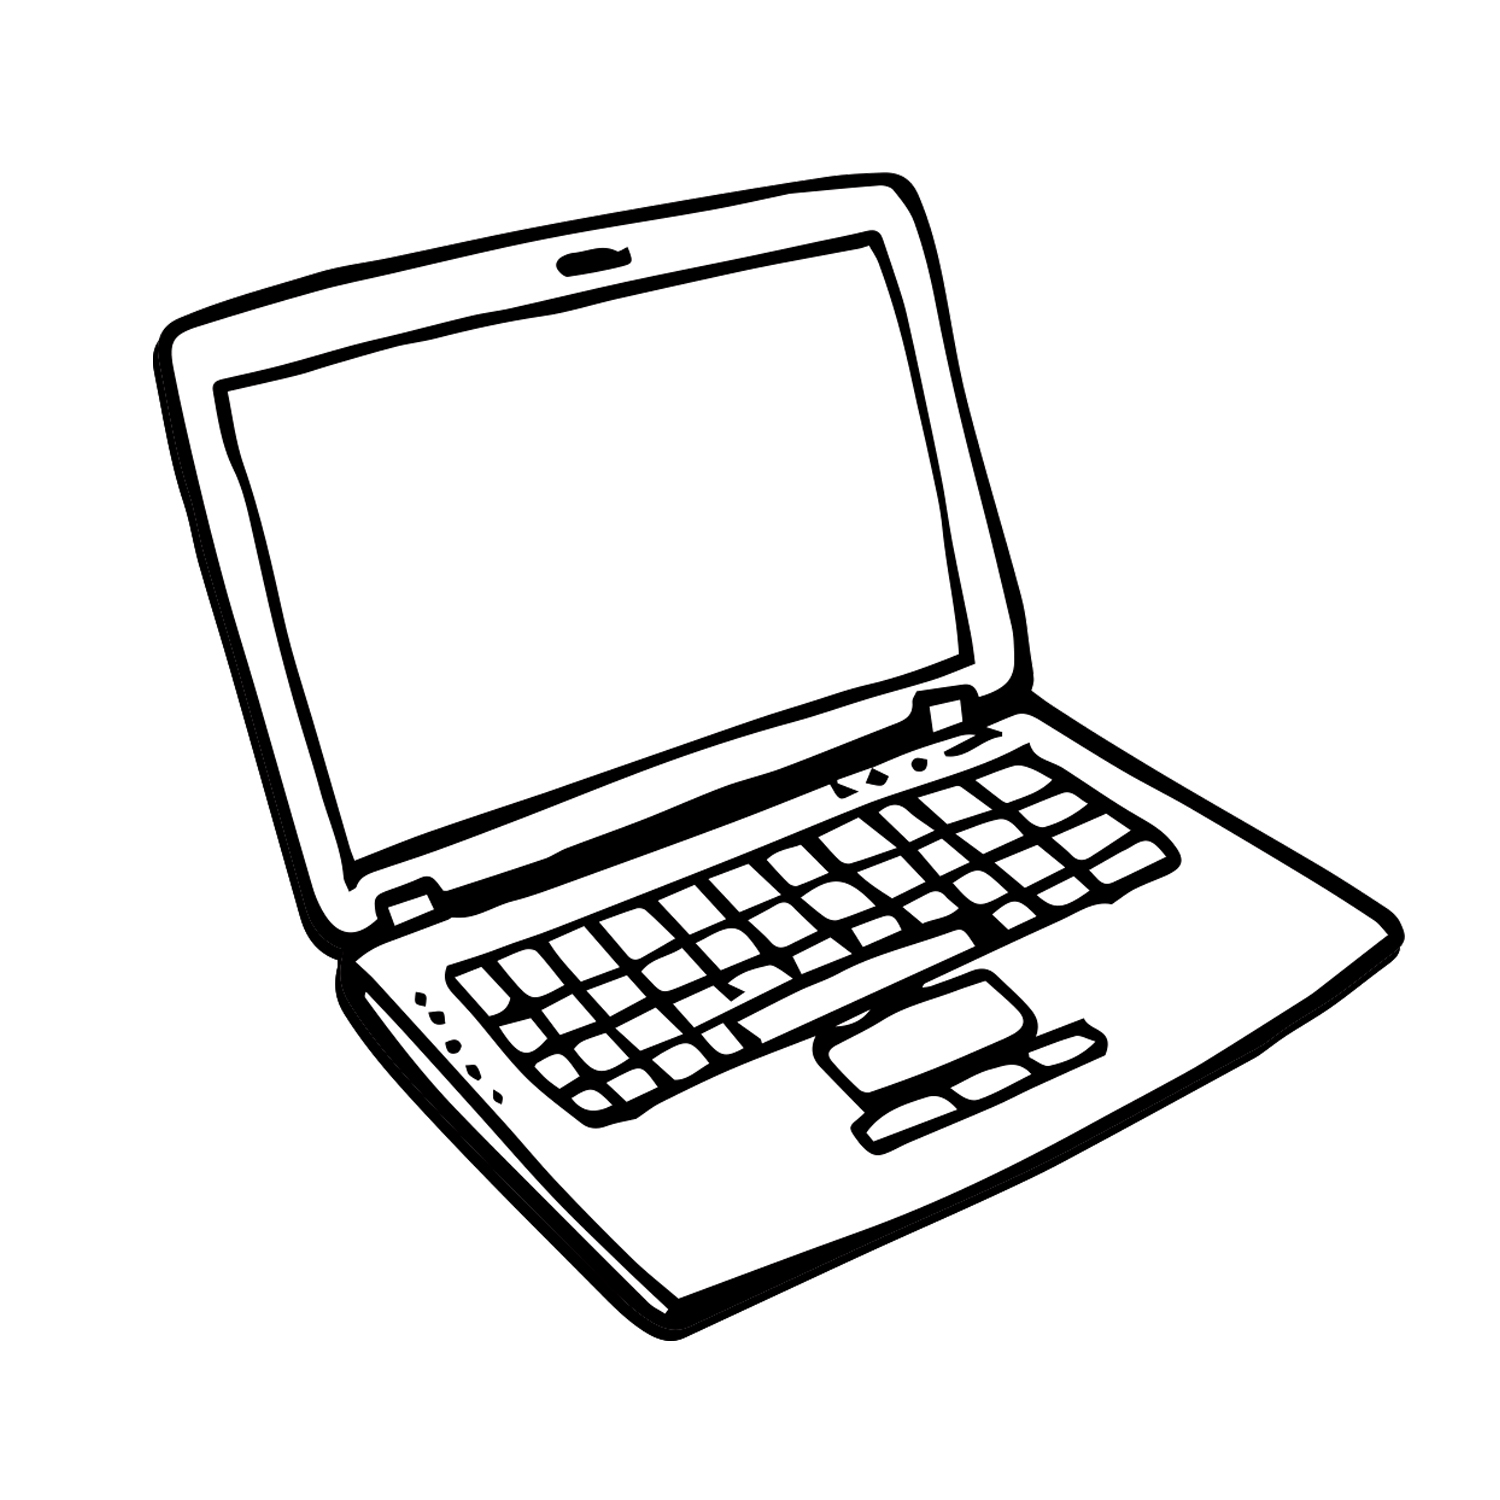 Line Art Laptop : Laptop line drawing at getdrawings free for personal